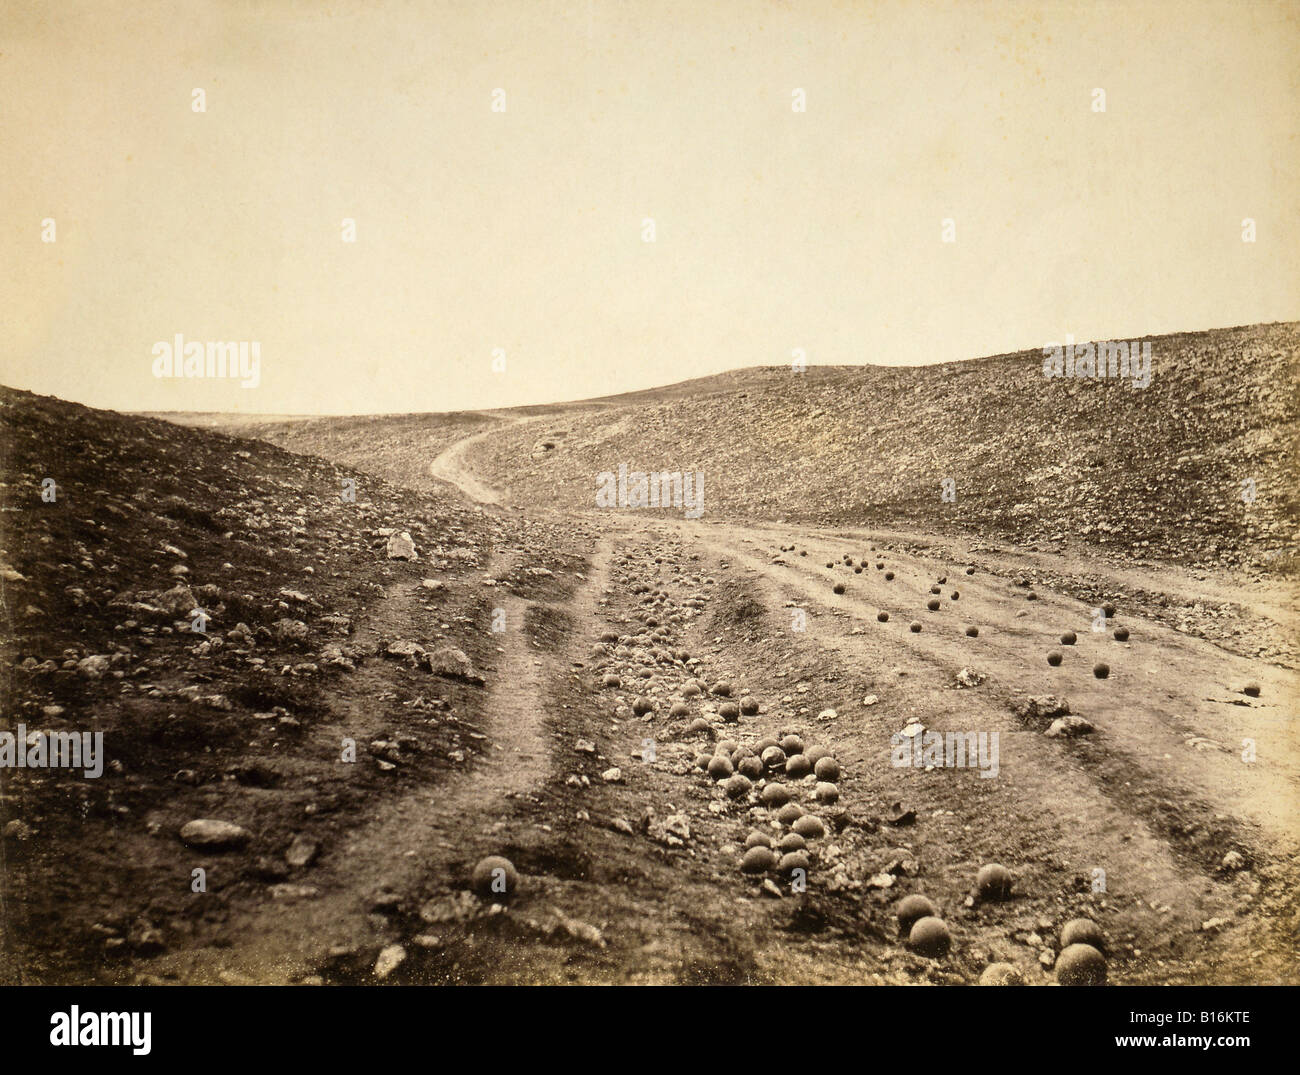 Battlefield scene after charge of the light brigade, Battle of Balaclava, Crimean War, 1854. - Stock Image